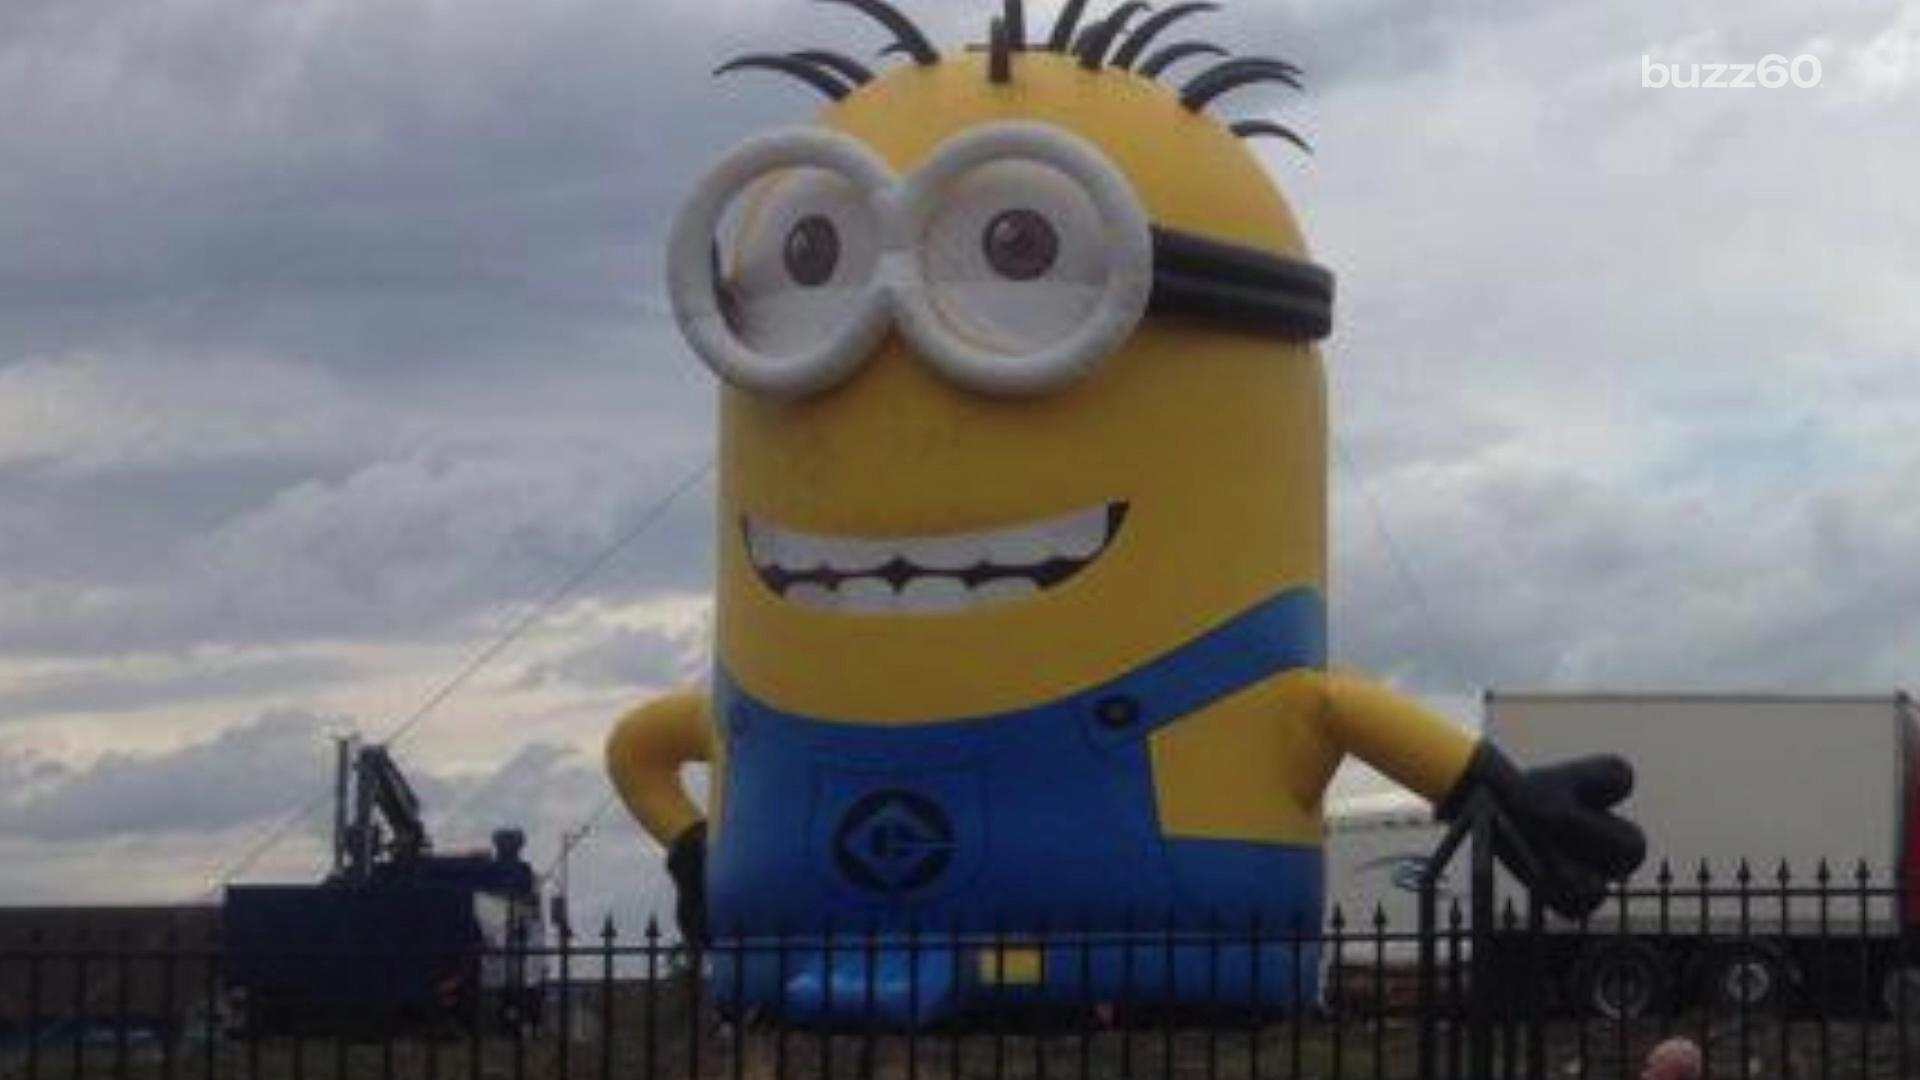 Giant inflatable 'Minion' wreaks havoc in Dublin